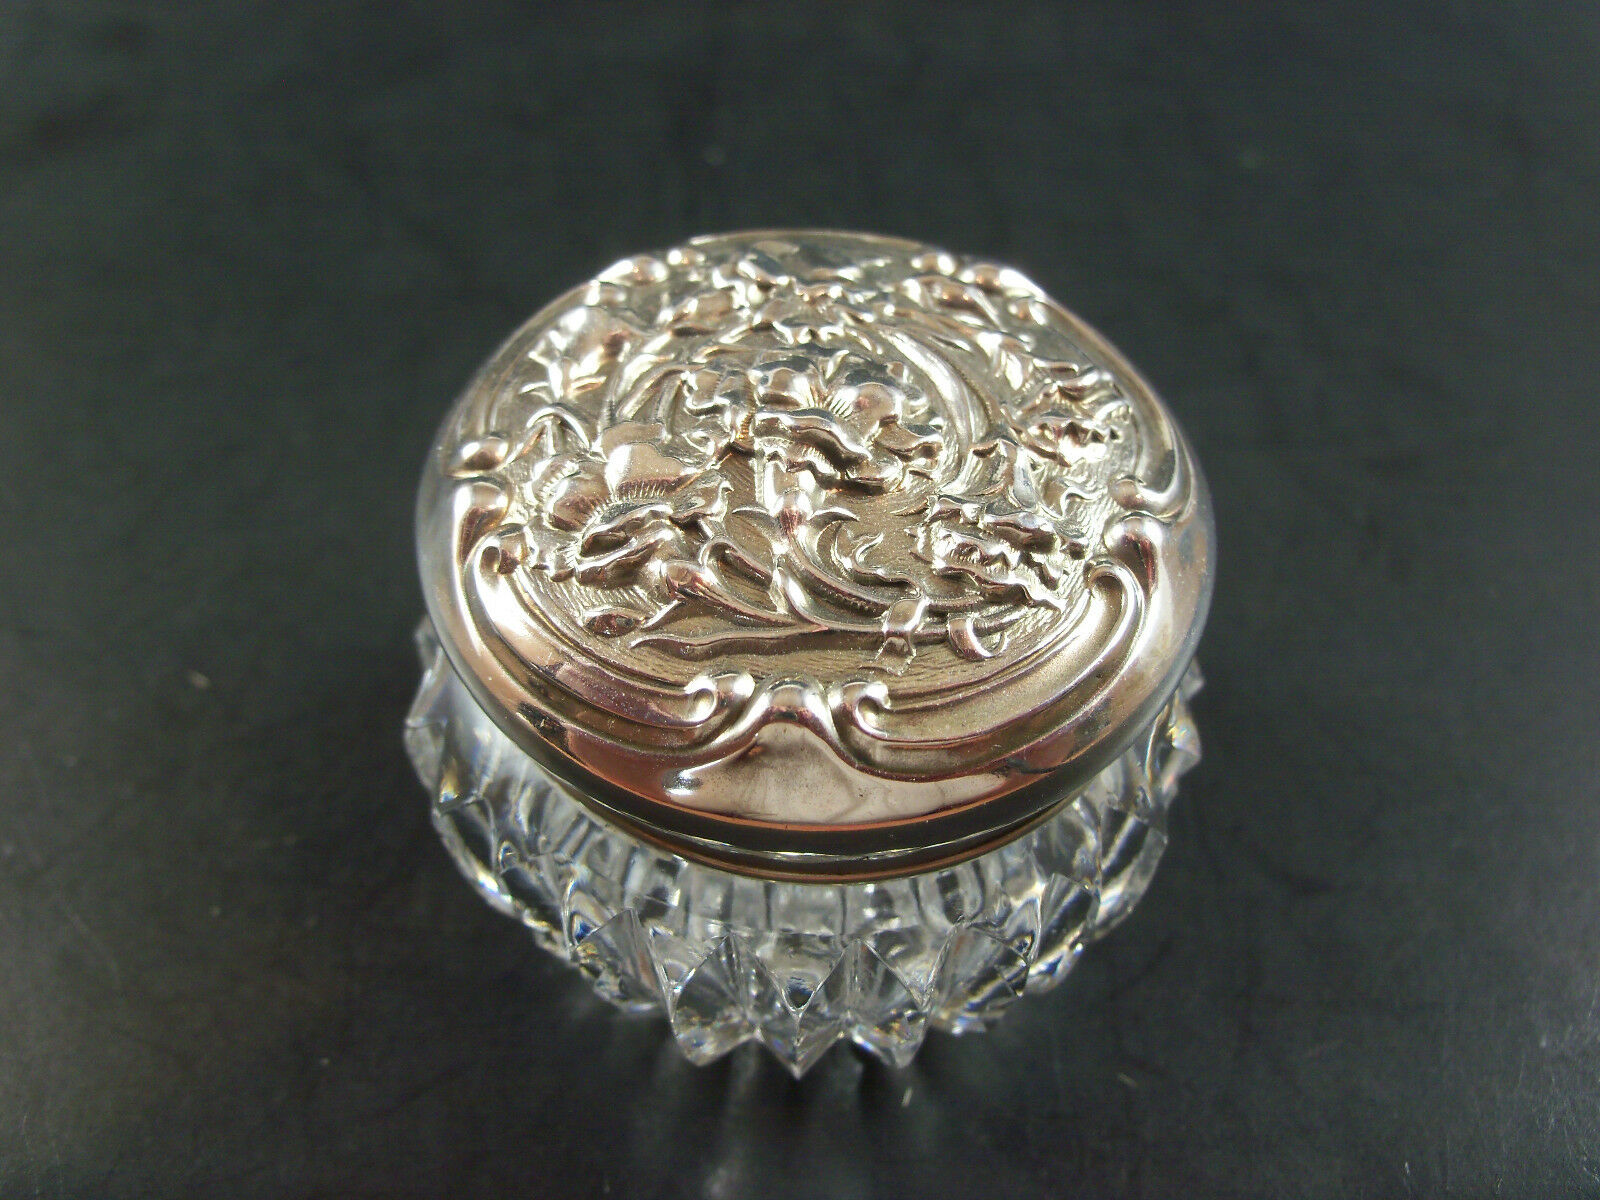 Rare unger brothers iris flowers sterling abp cut glass dresser 1 of 8 see more izmirmasajfo